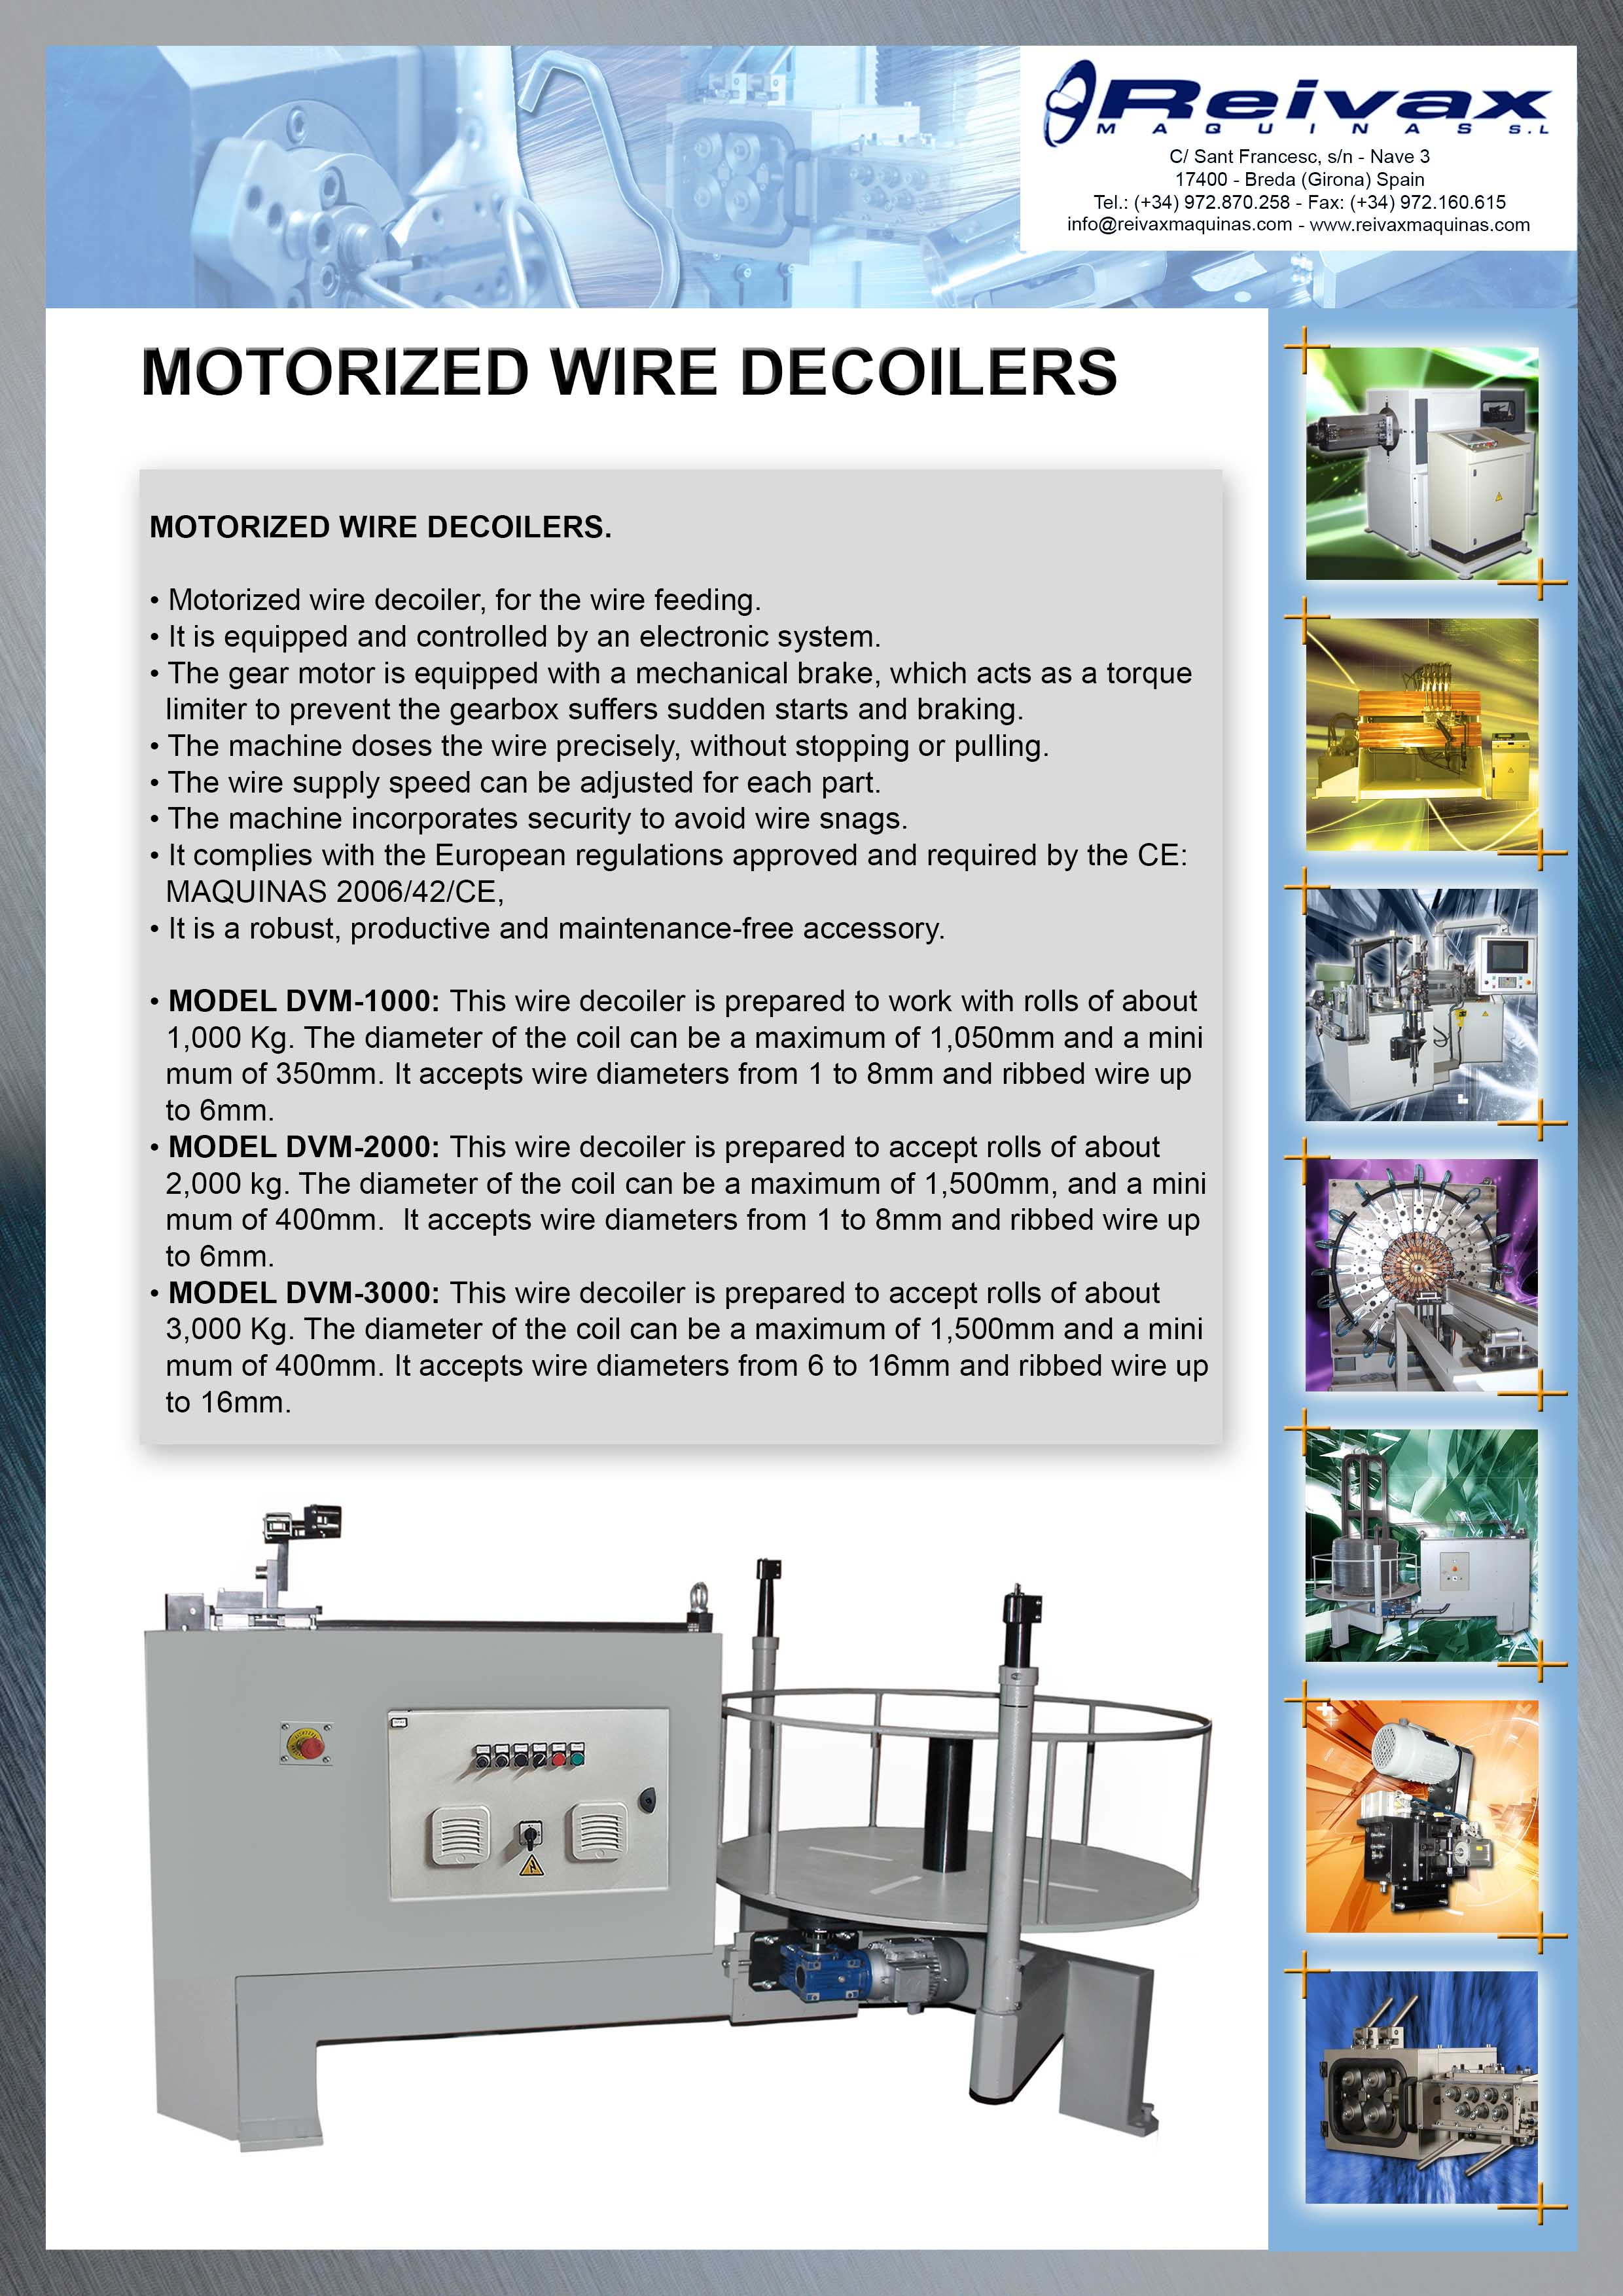 Reivax Maquinas, SL - Technical Details Motorized Wire Decoilers